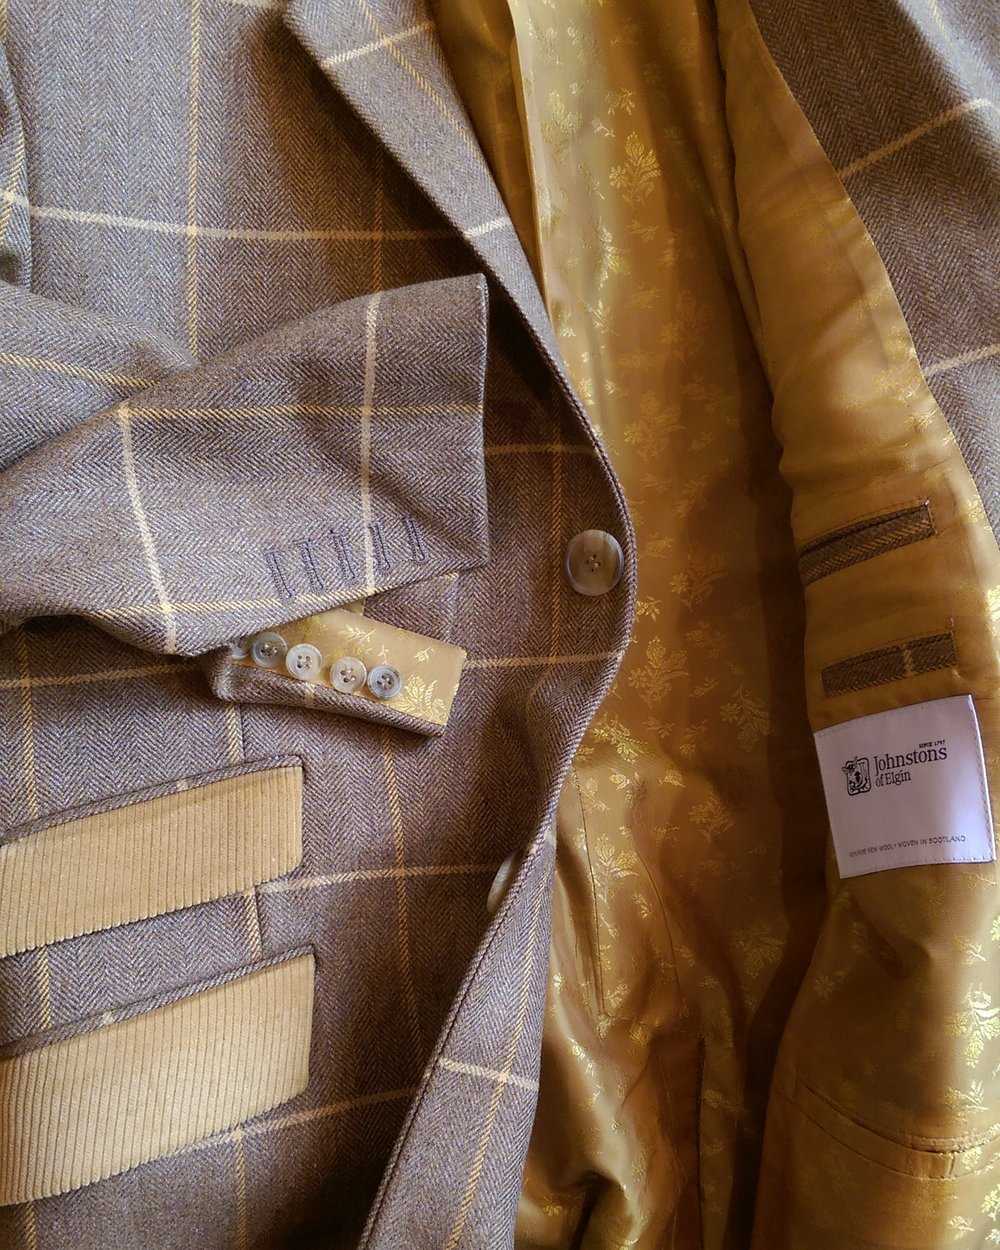 bespoke-all-uk-made-british-coat-overcoat-tweed-johnstons-of-elgin-cord-mustard-paisley-lining-cuff-detail-horn-buttons.jpg